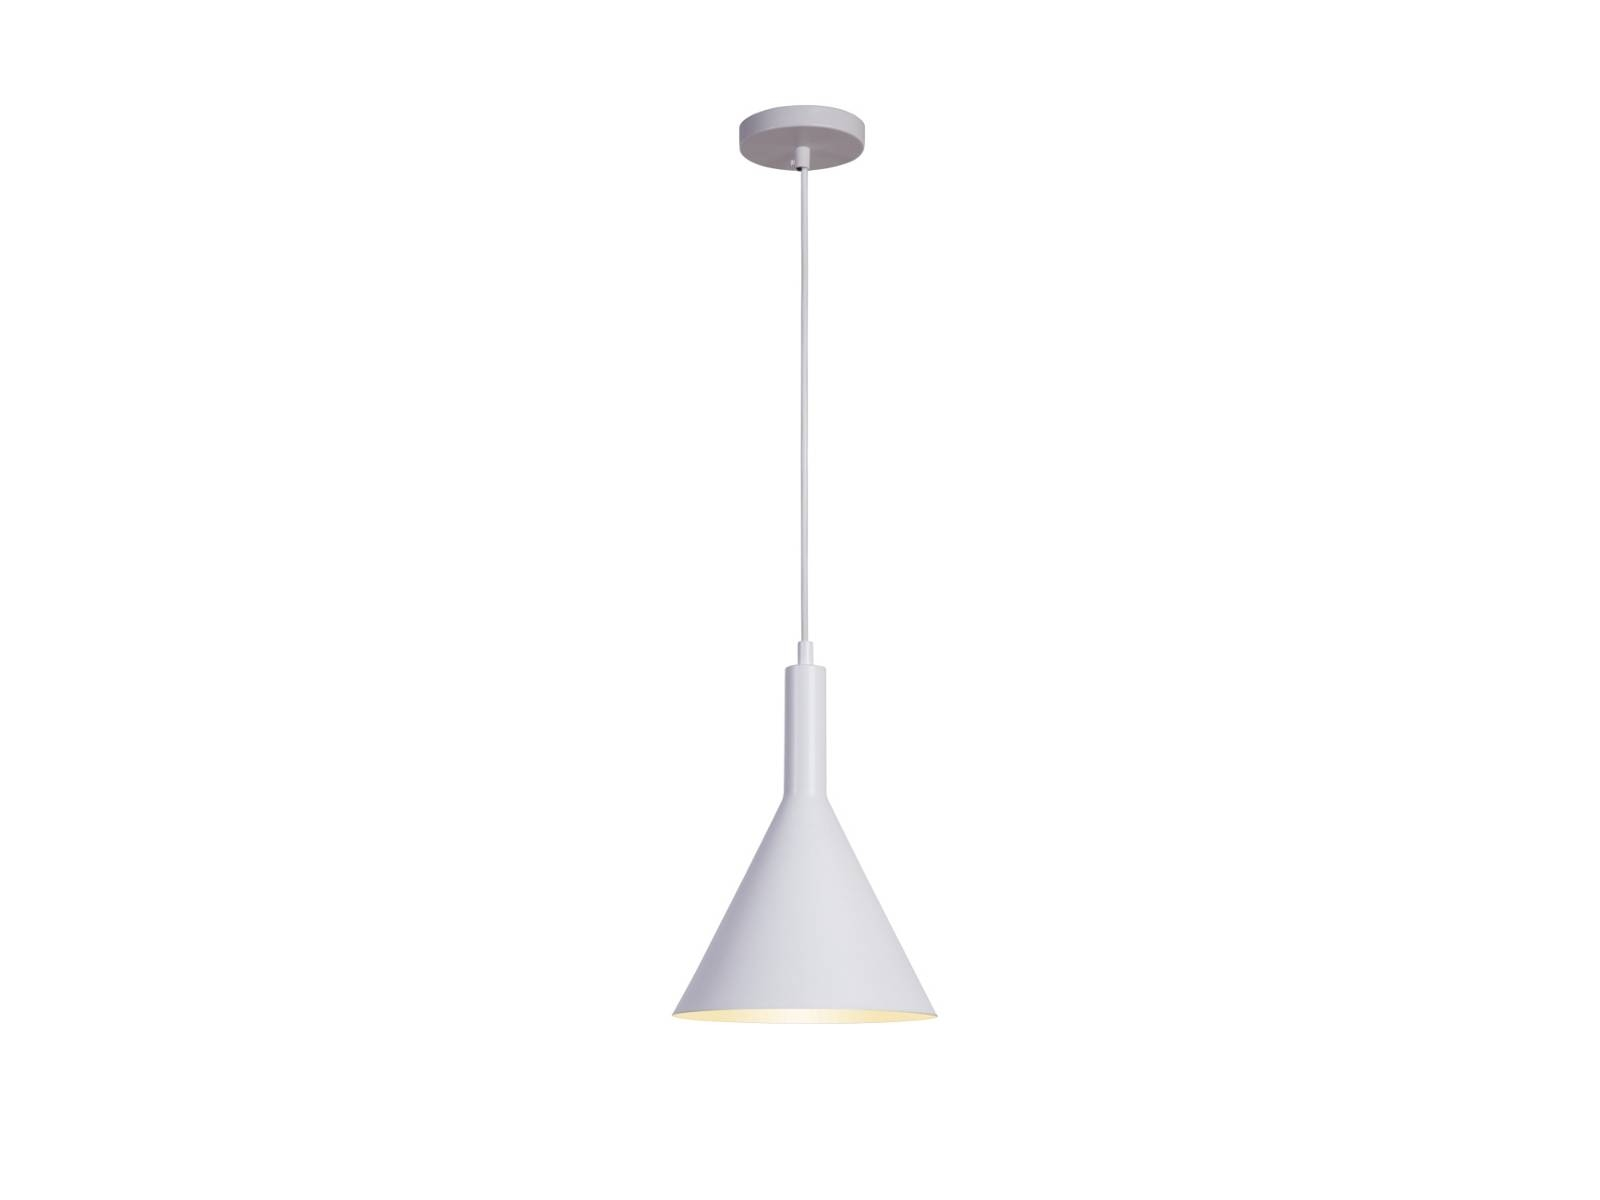 Lighting: Lbc Lighting | Commercial Ceiling Light Fixtures with regard to Commercial Pendant Light Fixtures (Image 11 of 15)